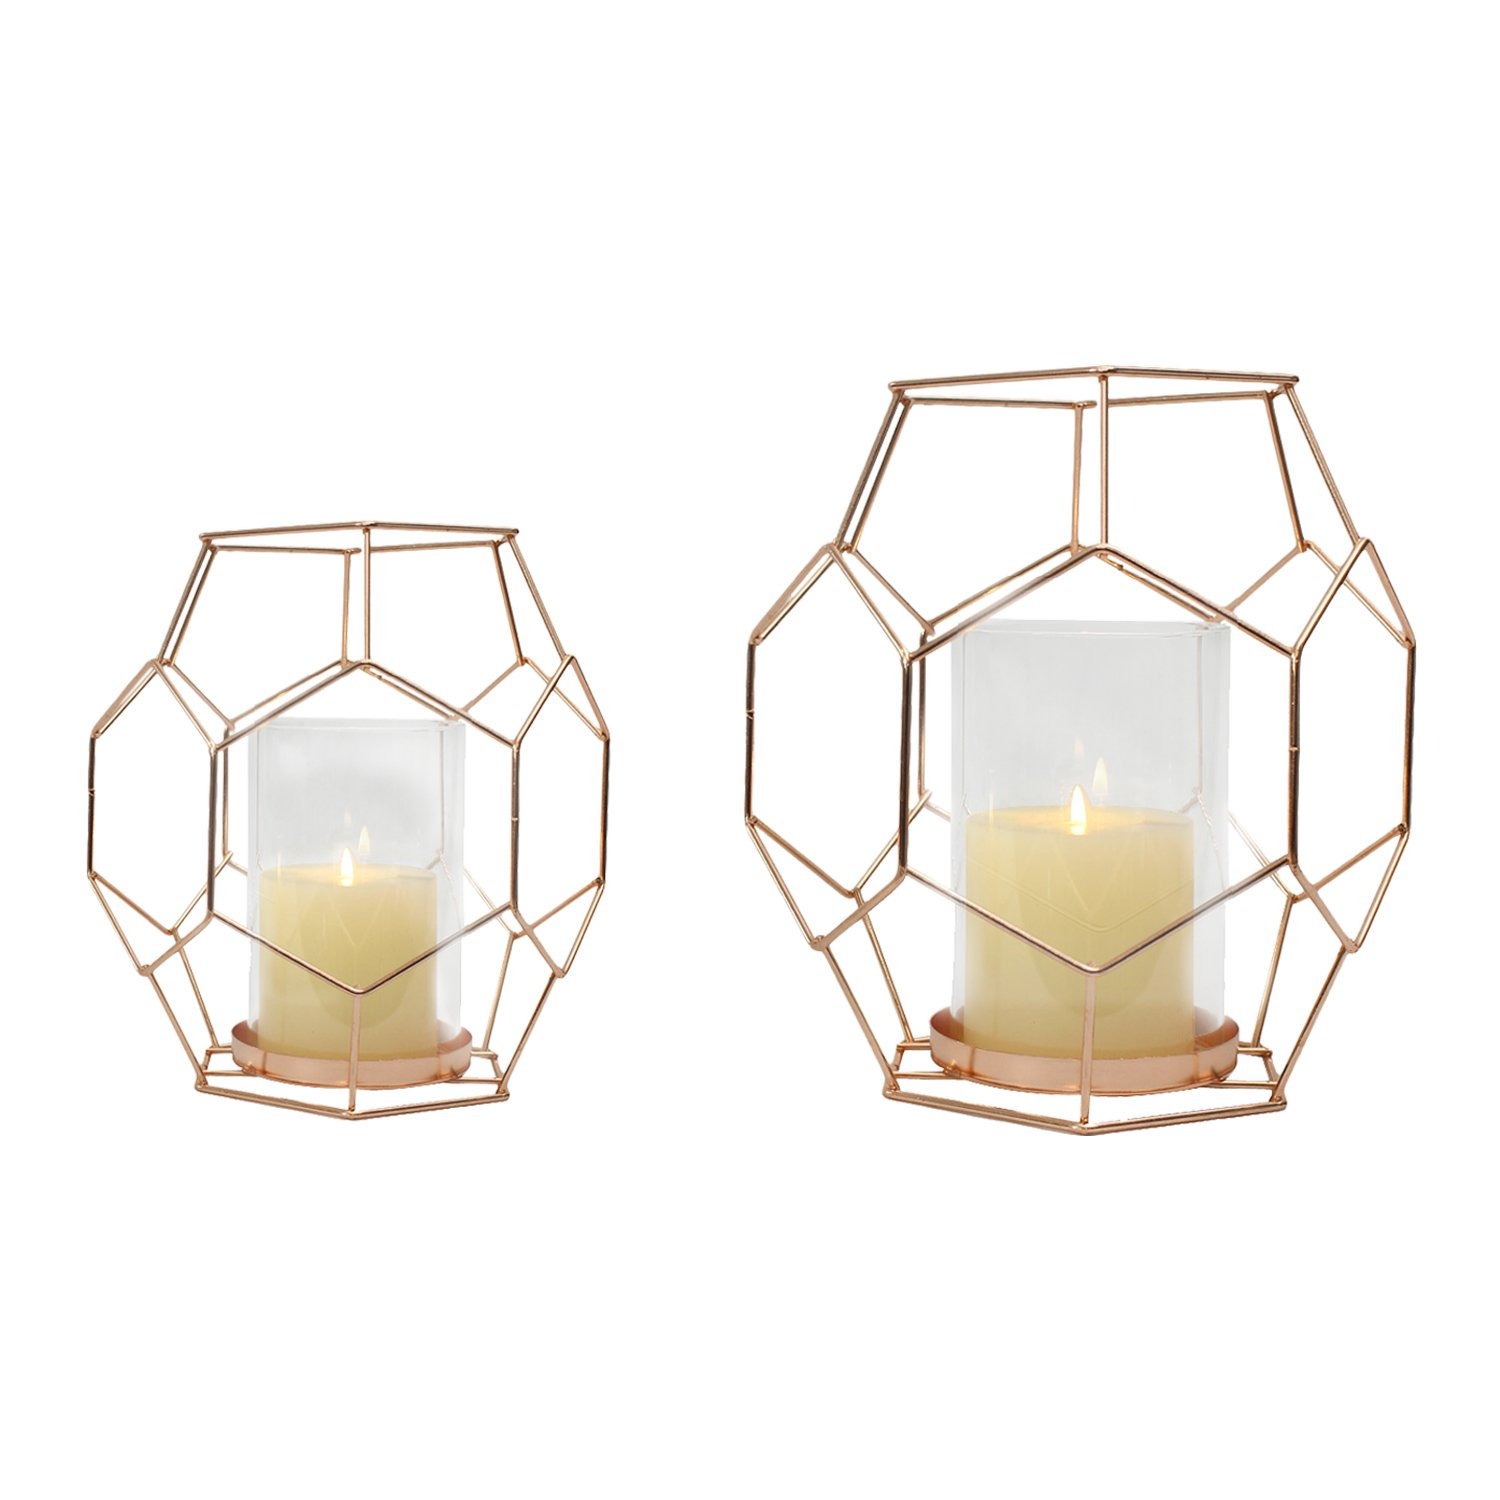 Joveco Accent Metal Candle Holder Stand, Set of Two JHD54